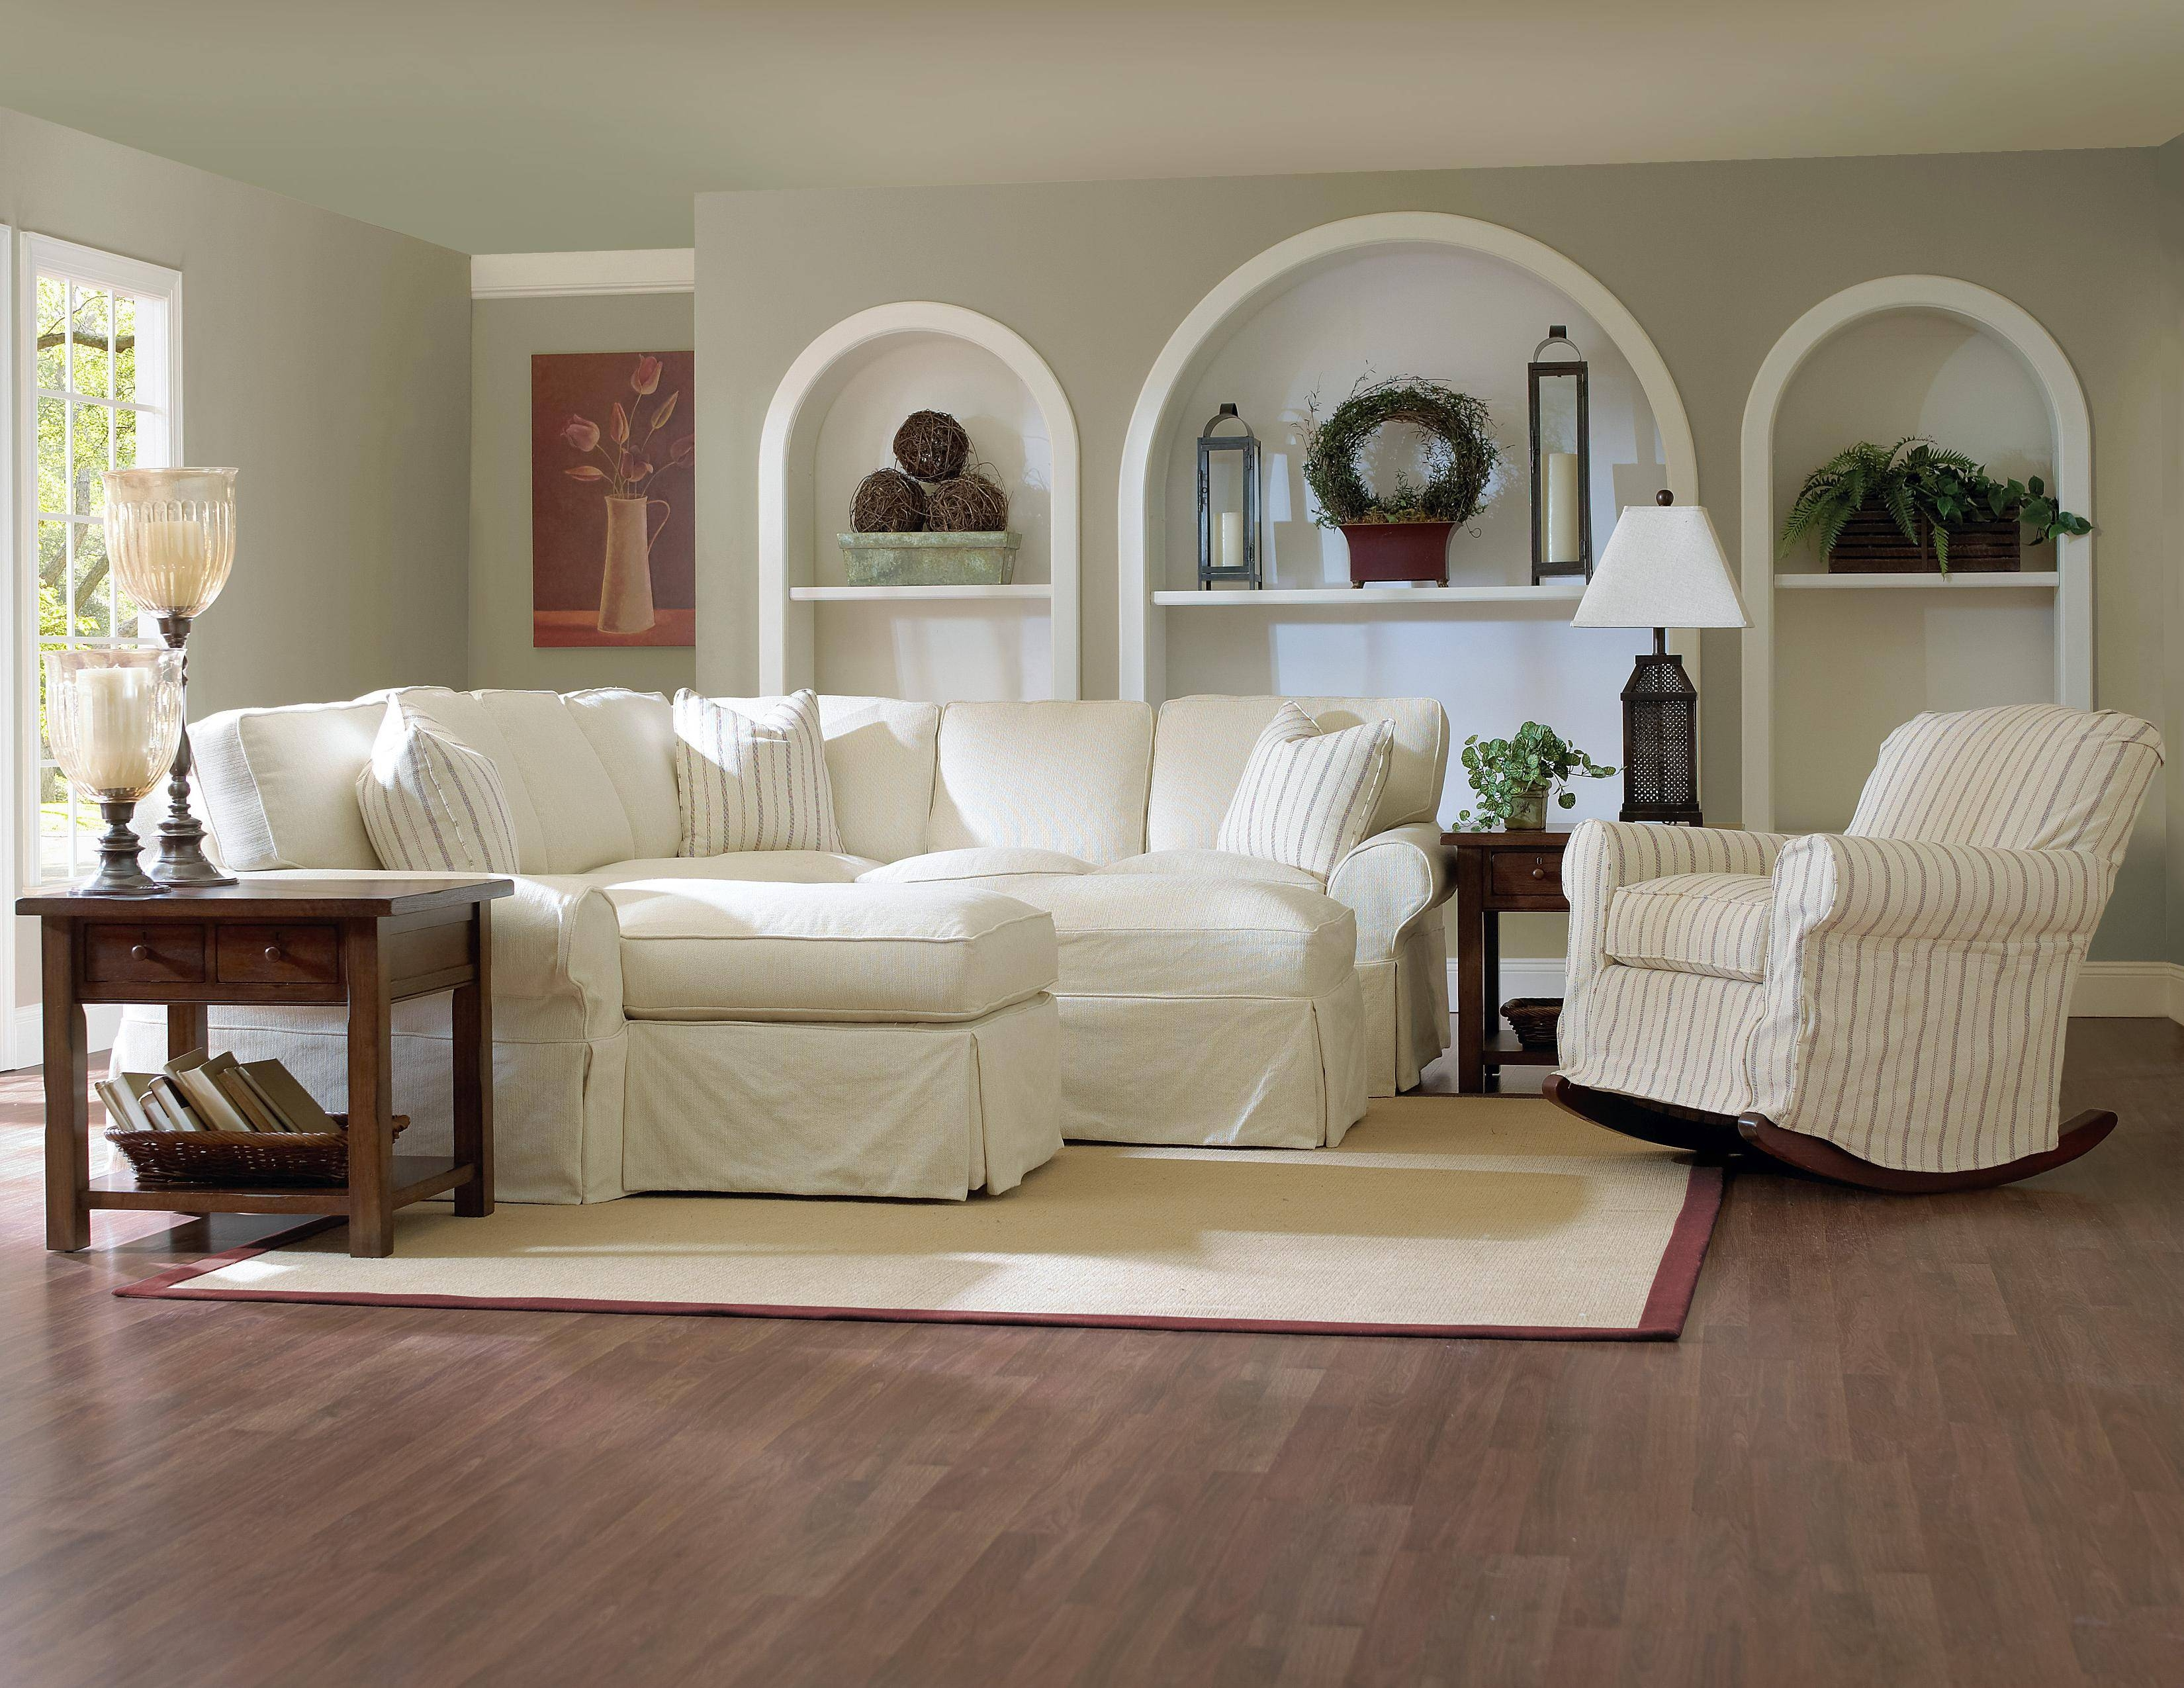 Furniture: Room With A Unique Richness And Sumptuous Softness With intended for Slipcovers For Sectional Sofas With Recliners (Image 12 of 30)